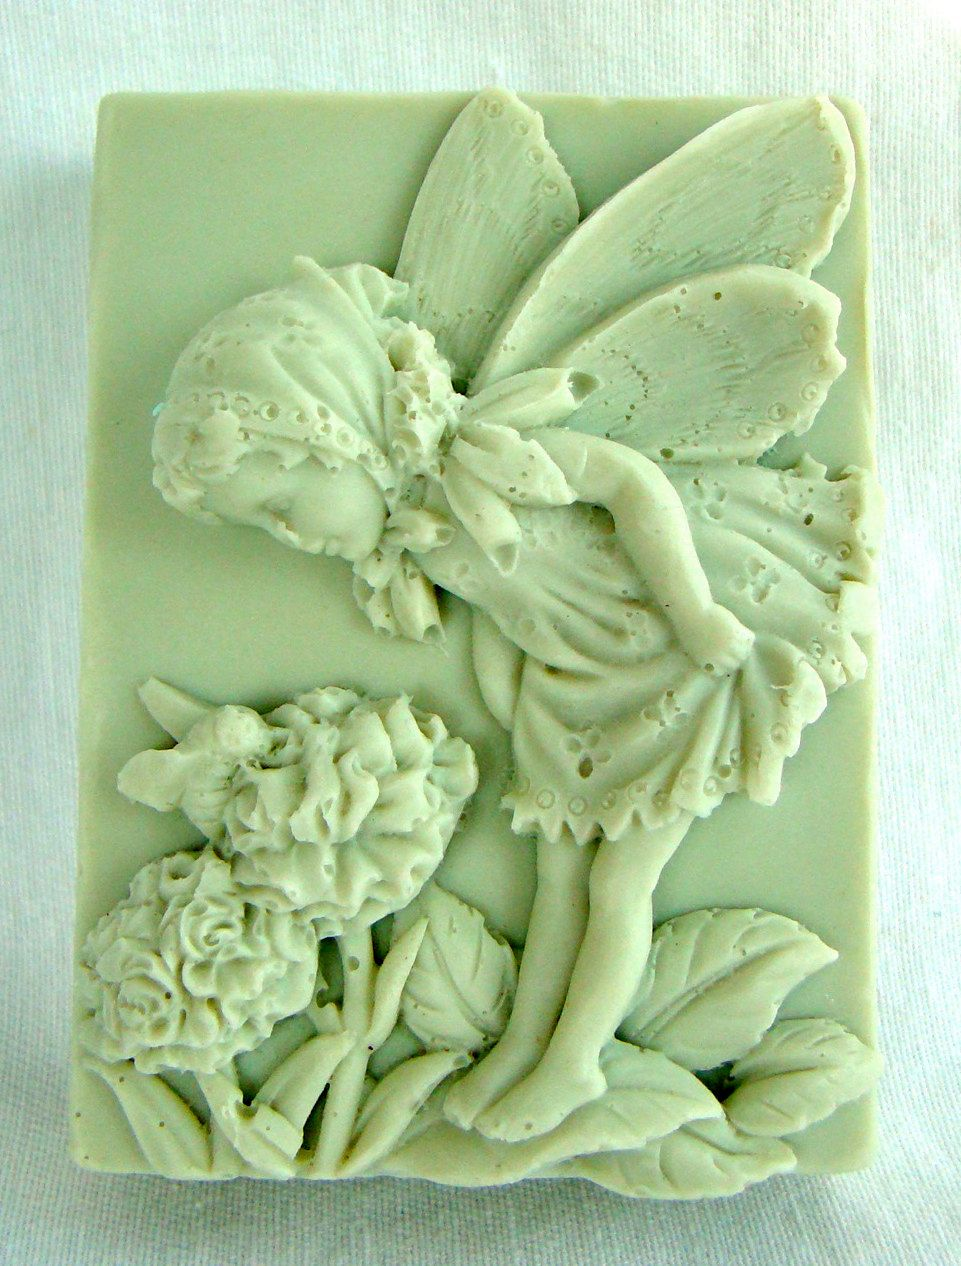 Handmade honeysuckle natural goats milk soap got to have have to